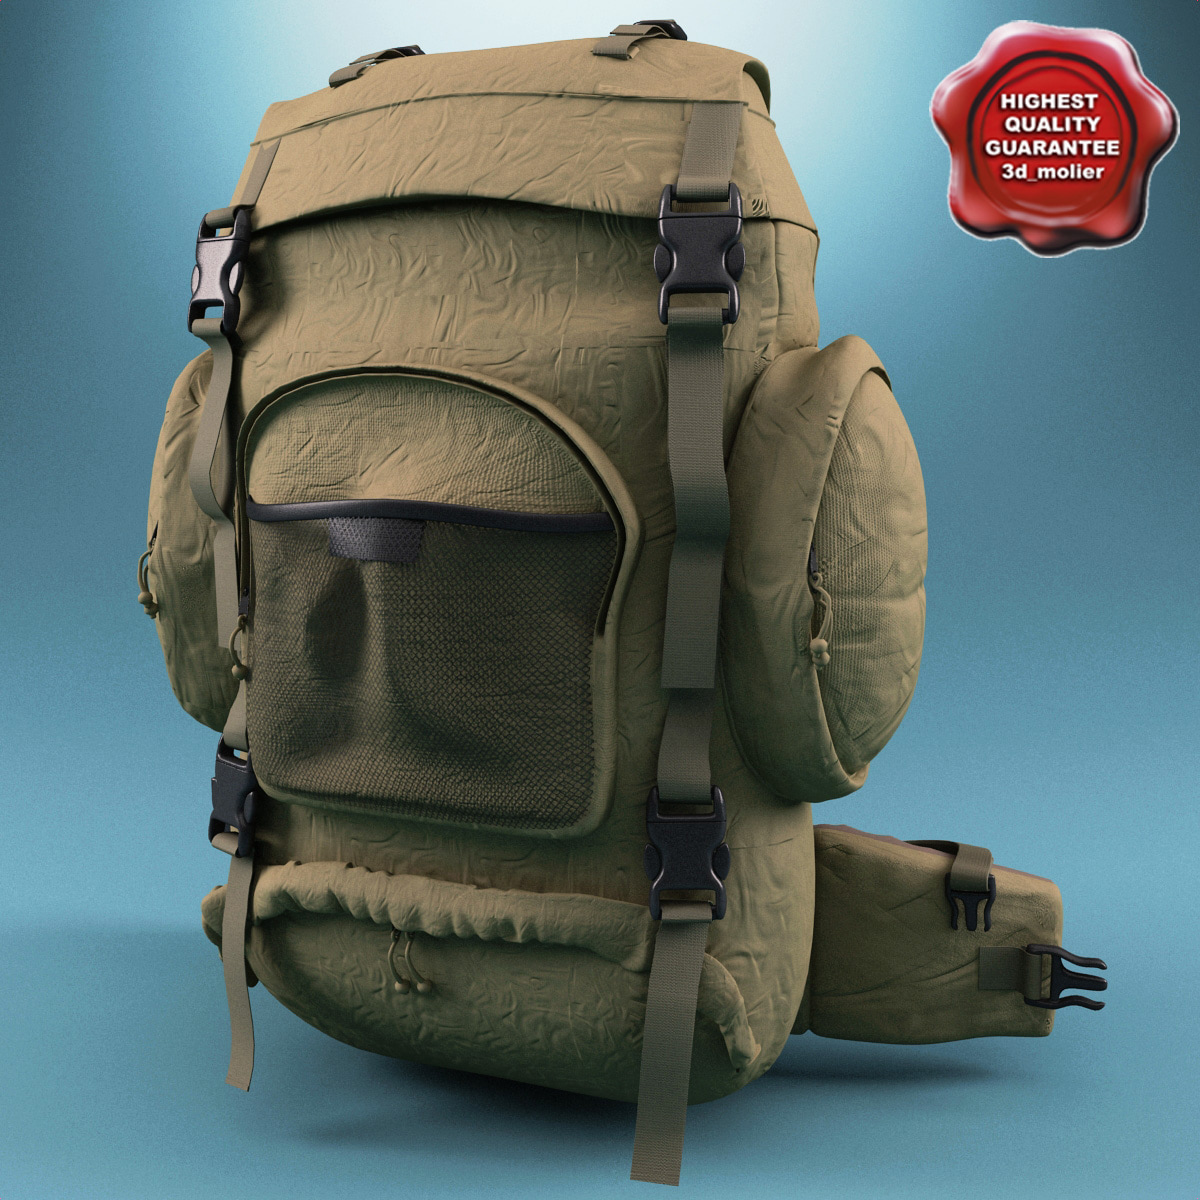 Military_Backpack_V2_00.jpg